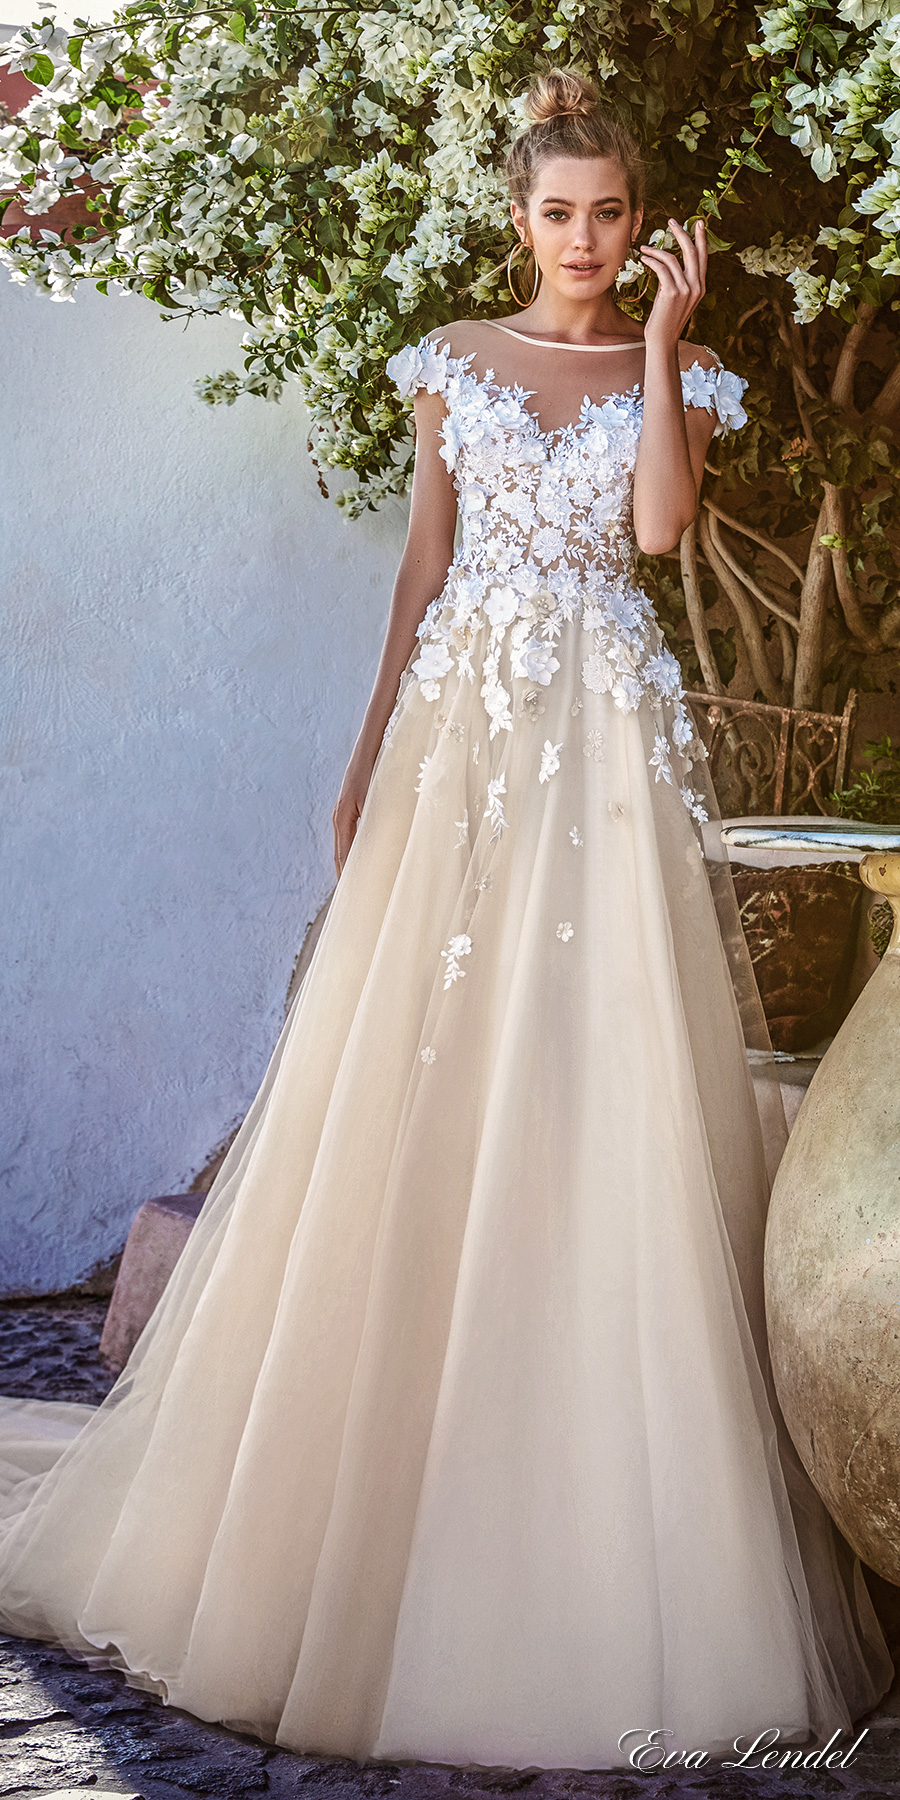 eva lendel 2017 bridal cap sleeves off the shoulder sheer bateau neckline heavily embellished bodice ivory color romantic a line wedding dress open v back royal train (holly) mv